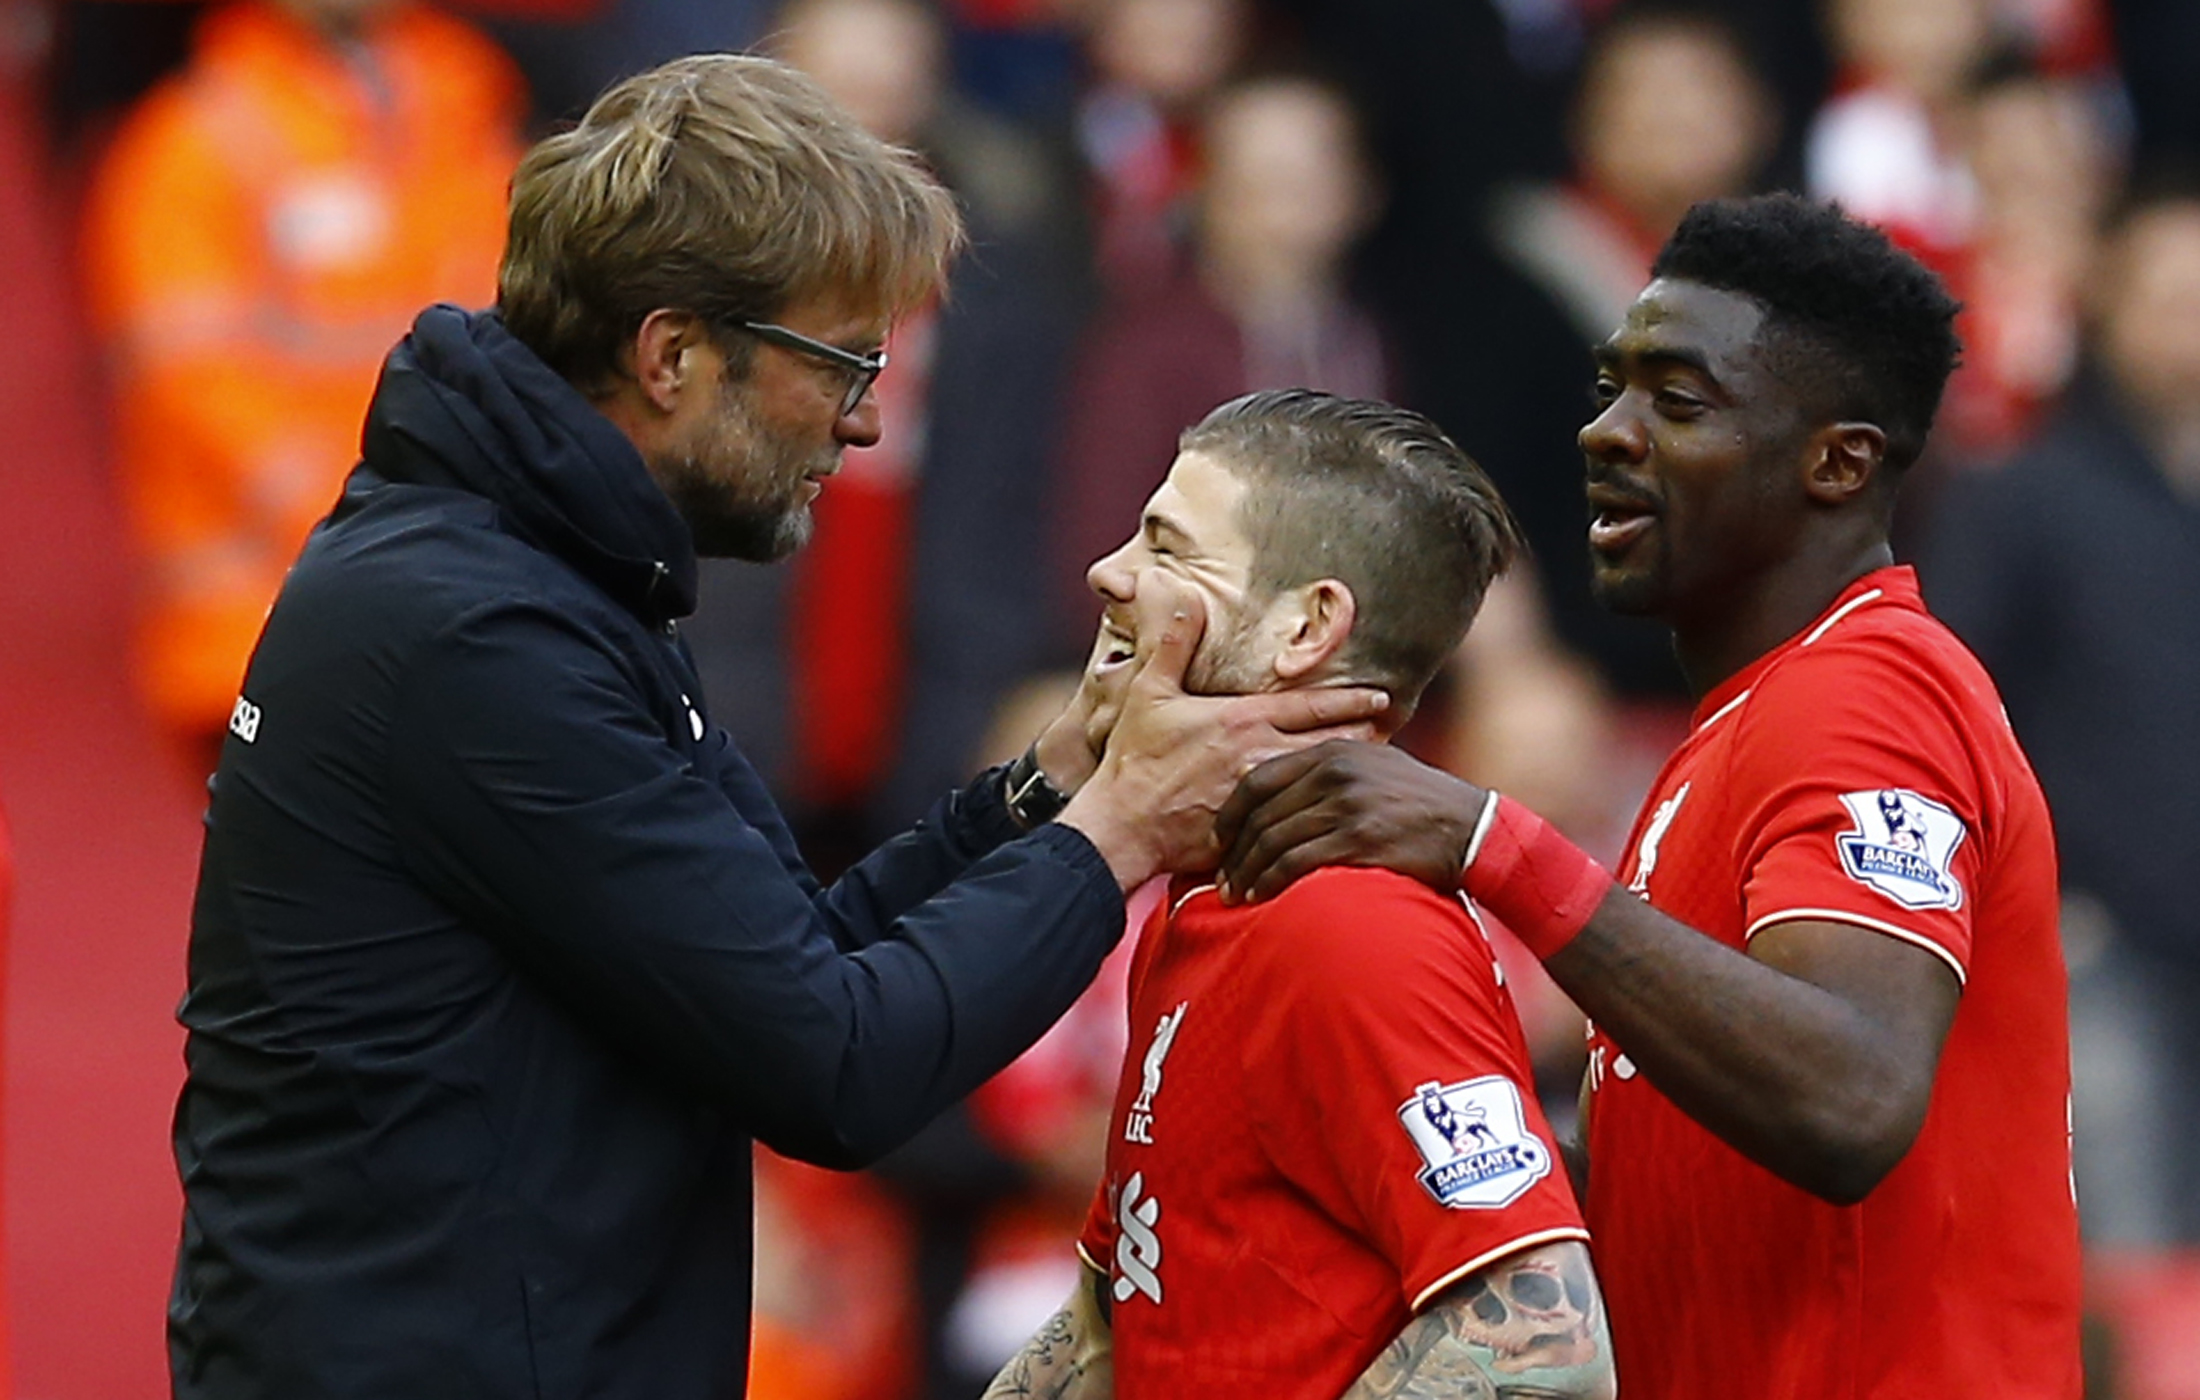 Alberto Moreno lifts lid on relationship with Liverpool boss Jurgen Klopp